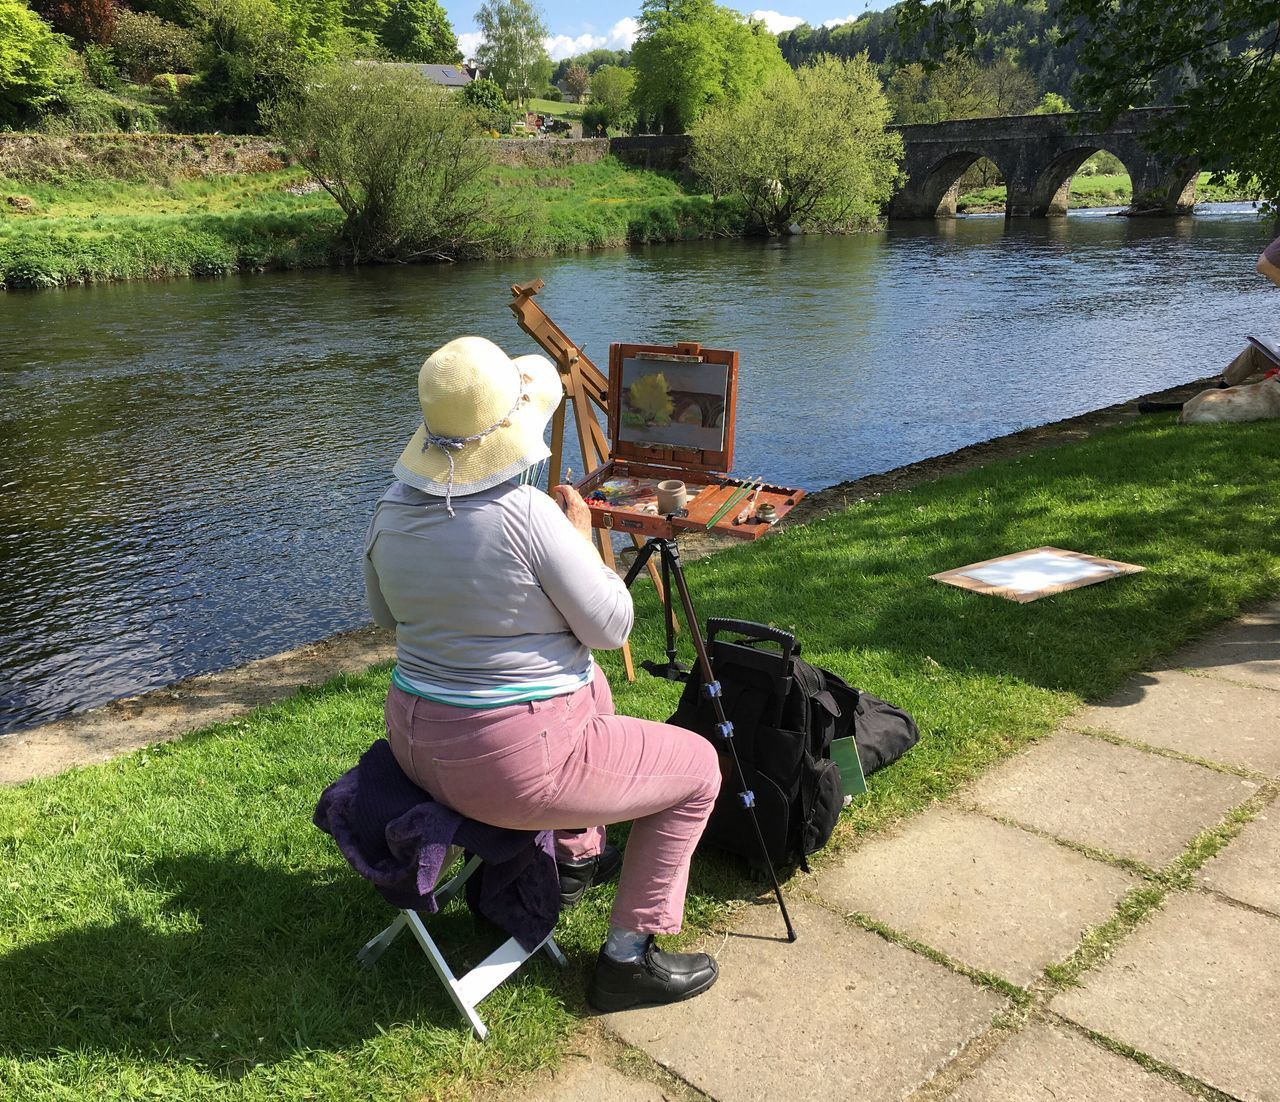 Inistioge Ireland Artist Painting In Progress Lifestyles Leisure Activity By The River By The Water Outdoorlife Enjoy The New Normal Old Bridge Painting Painter